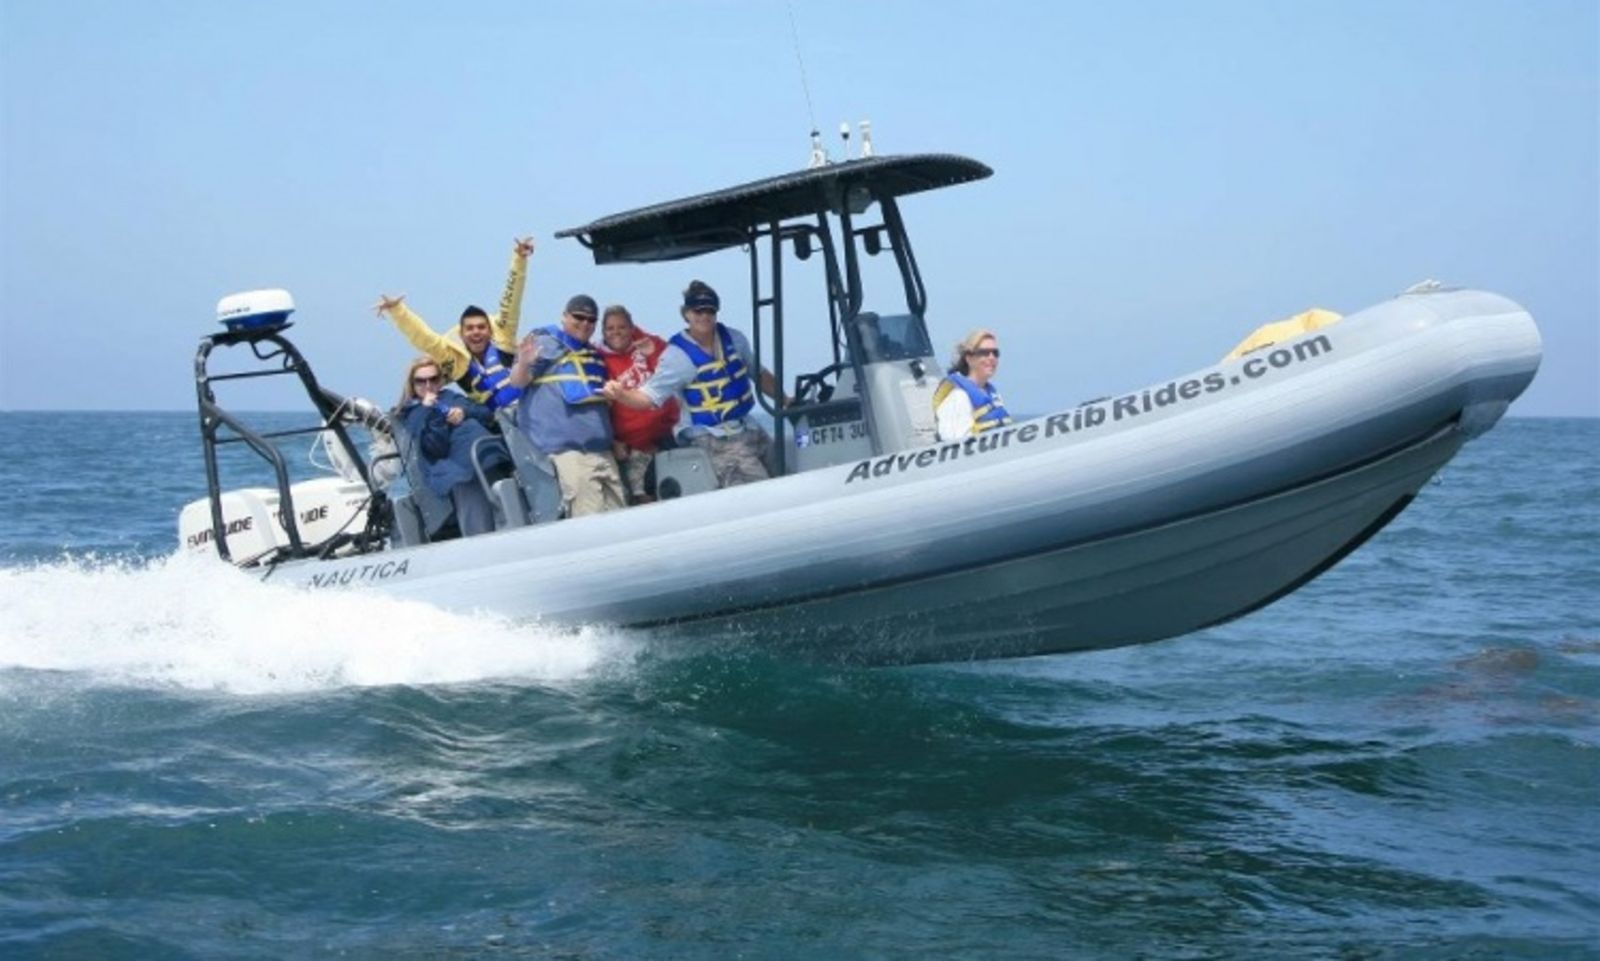 Adventure boat tours and whale watching in san diego in